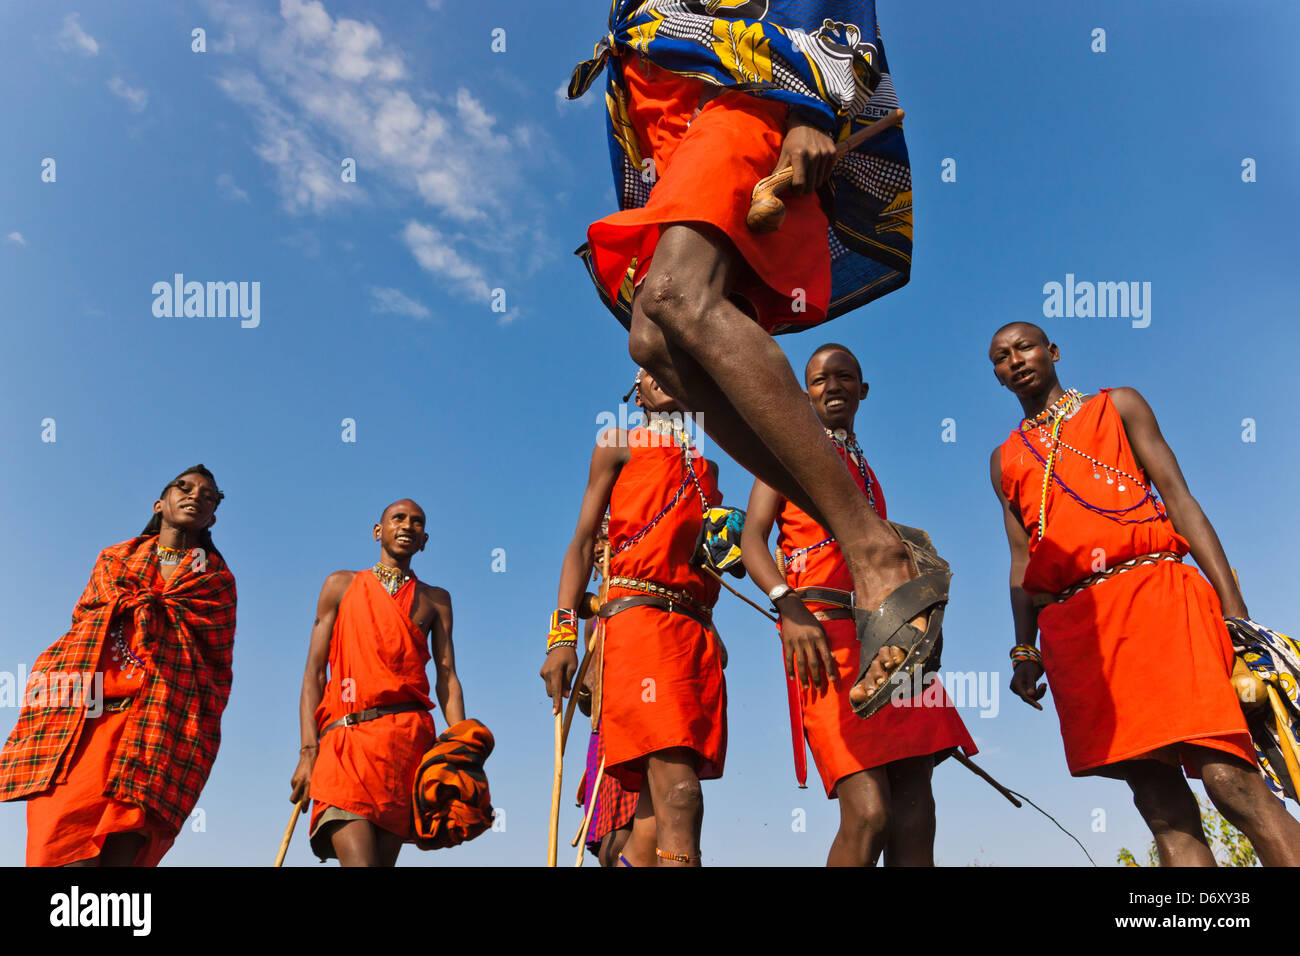 Masai tribespeople performing jumping dance, Masai Mara, Kenya Stock Foto